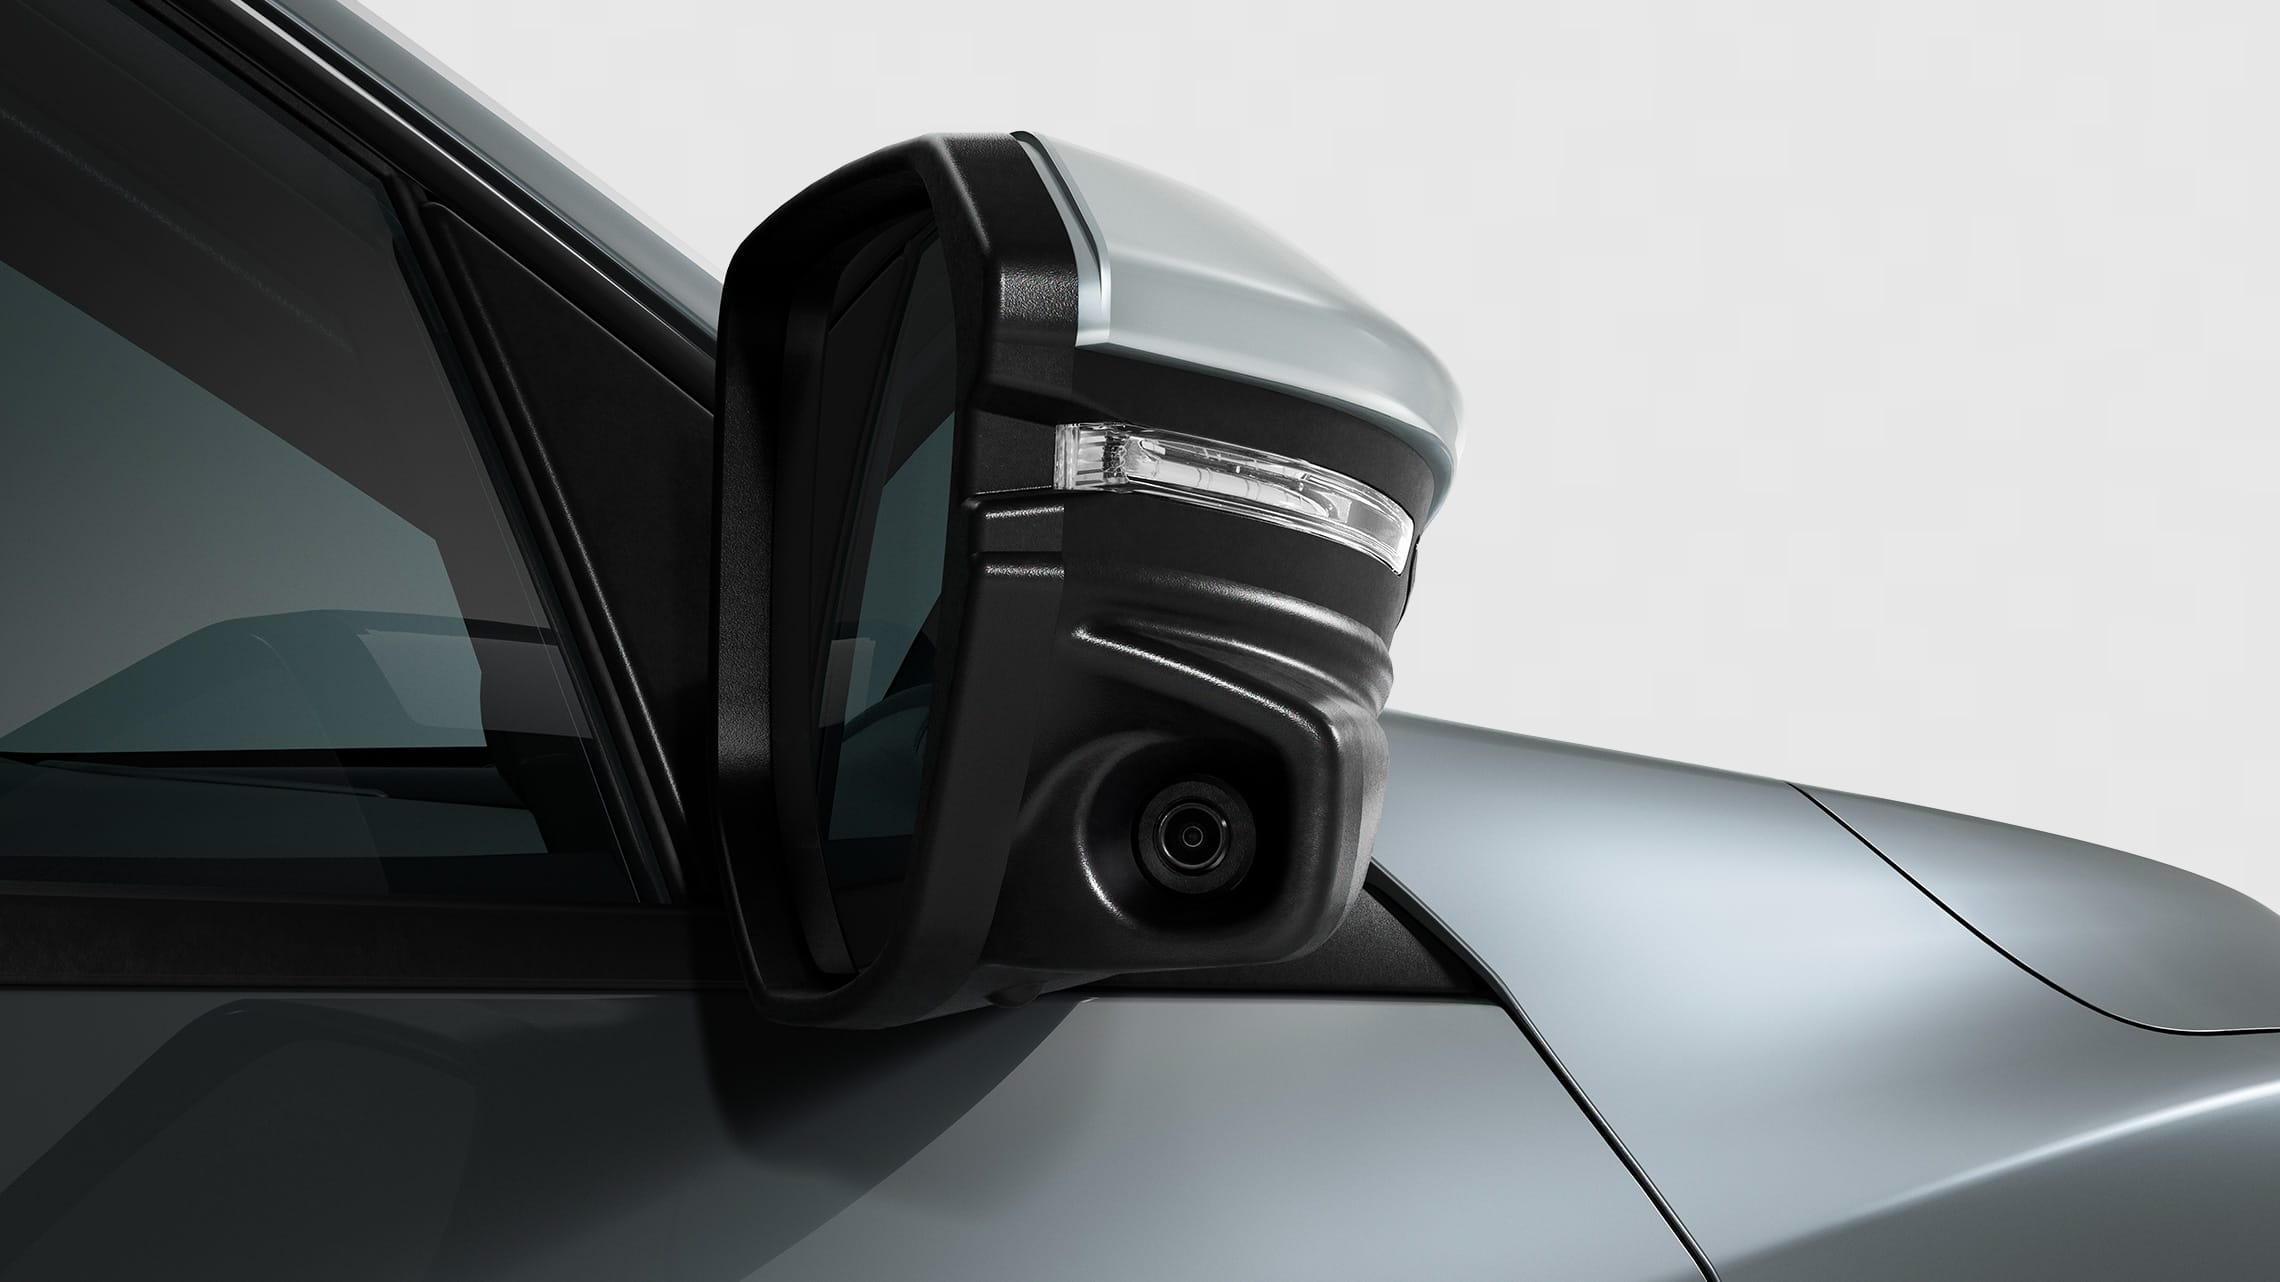 Honda LaneWatch™ camera detail on passenger's side mirror on 2020 Honda Civic Sport Touring Hatchback in Sonic Gray Pearl.